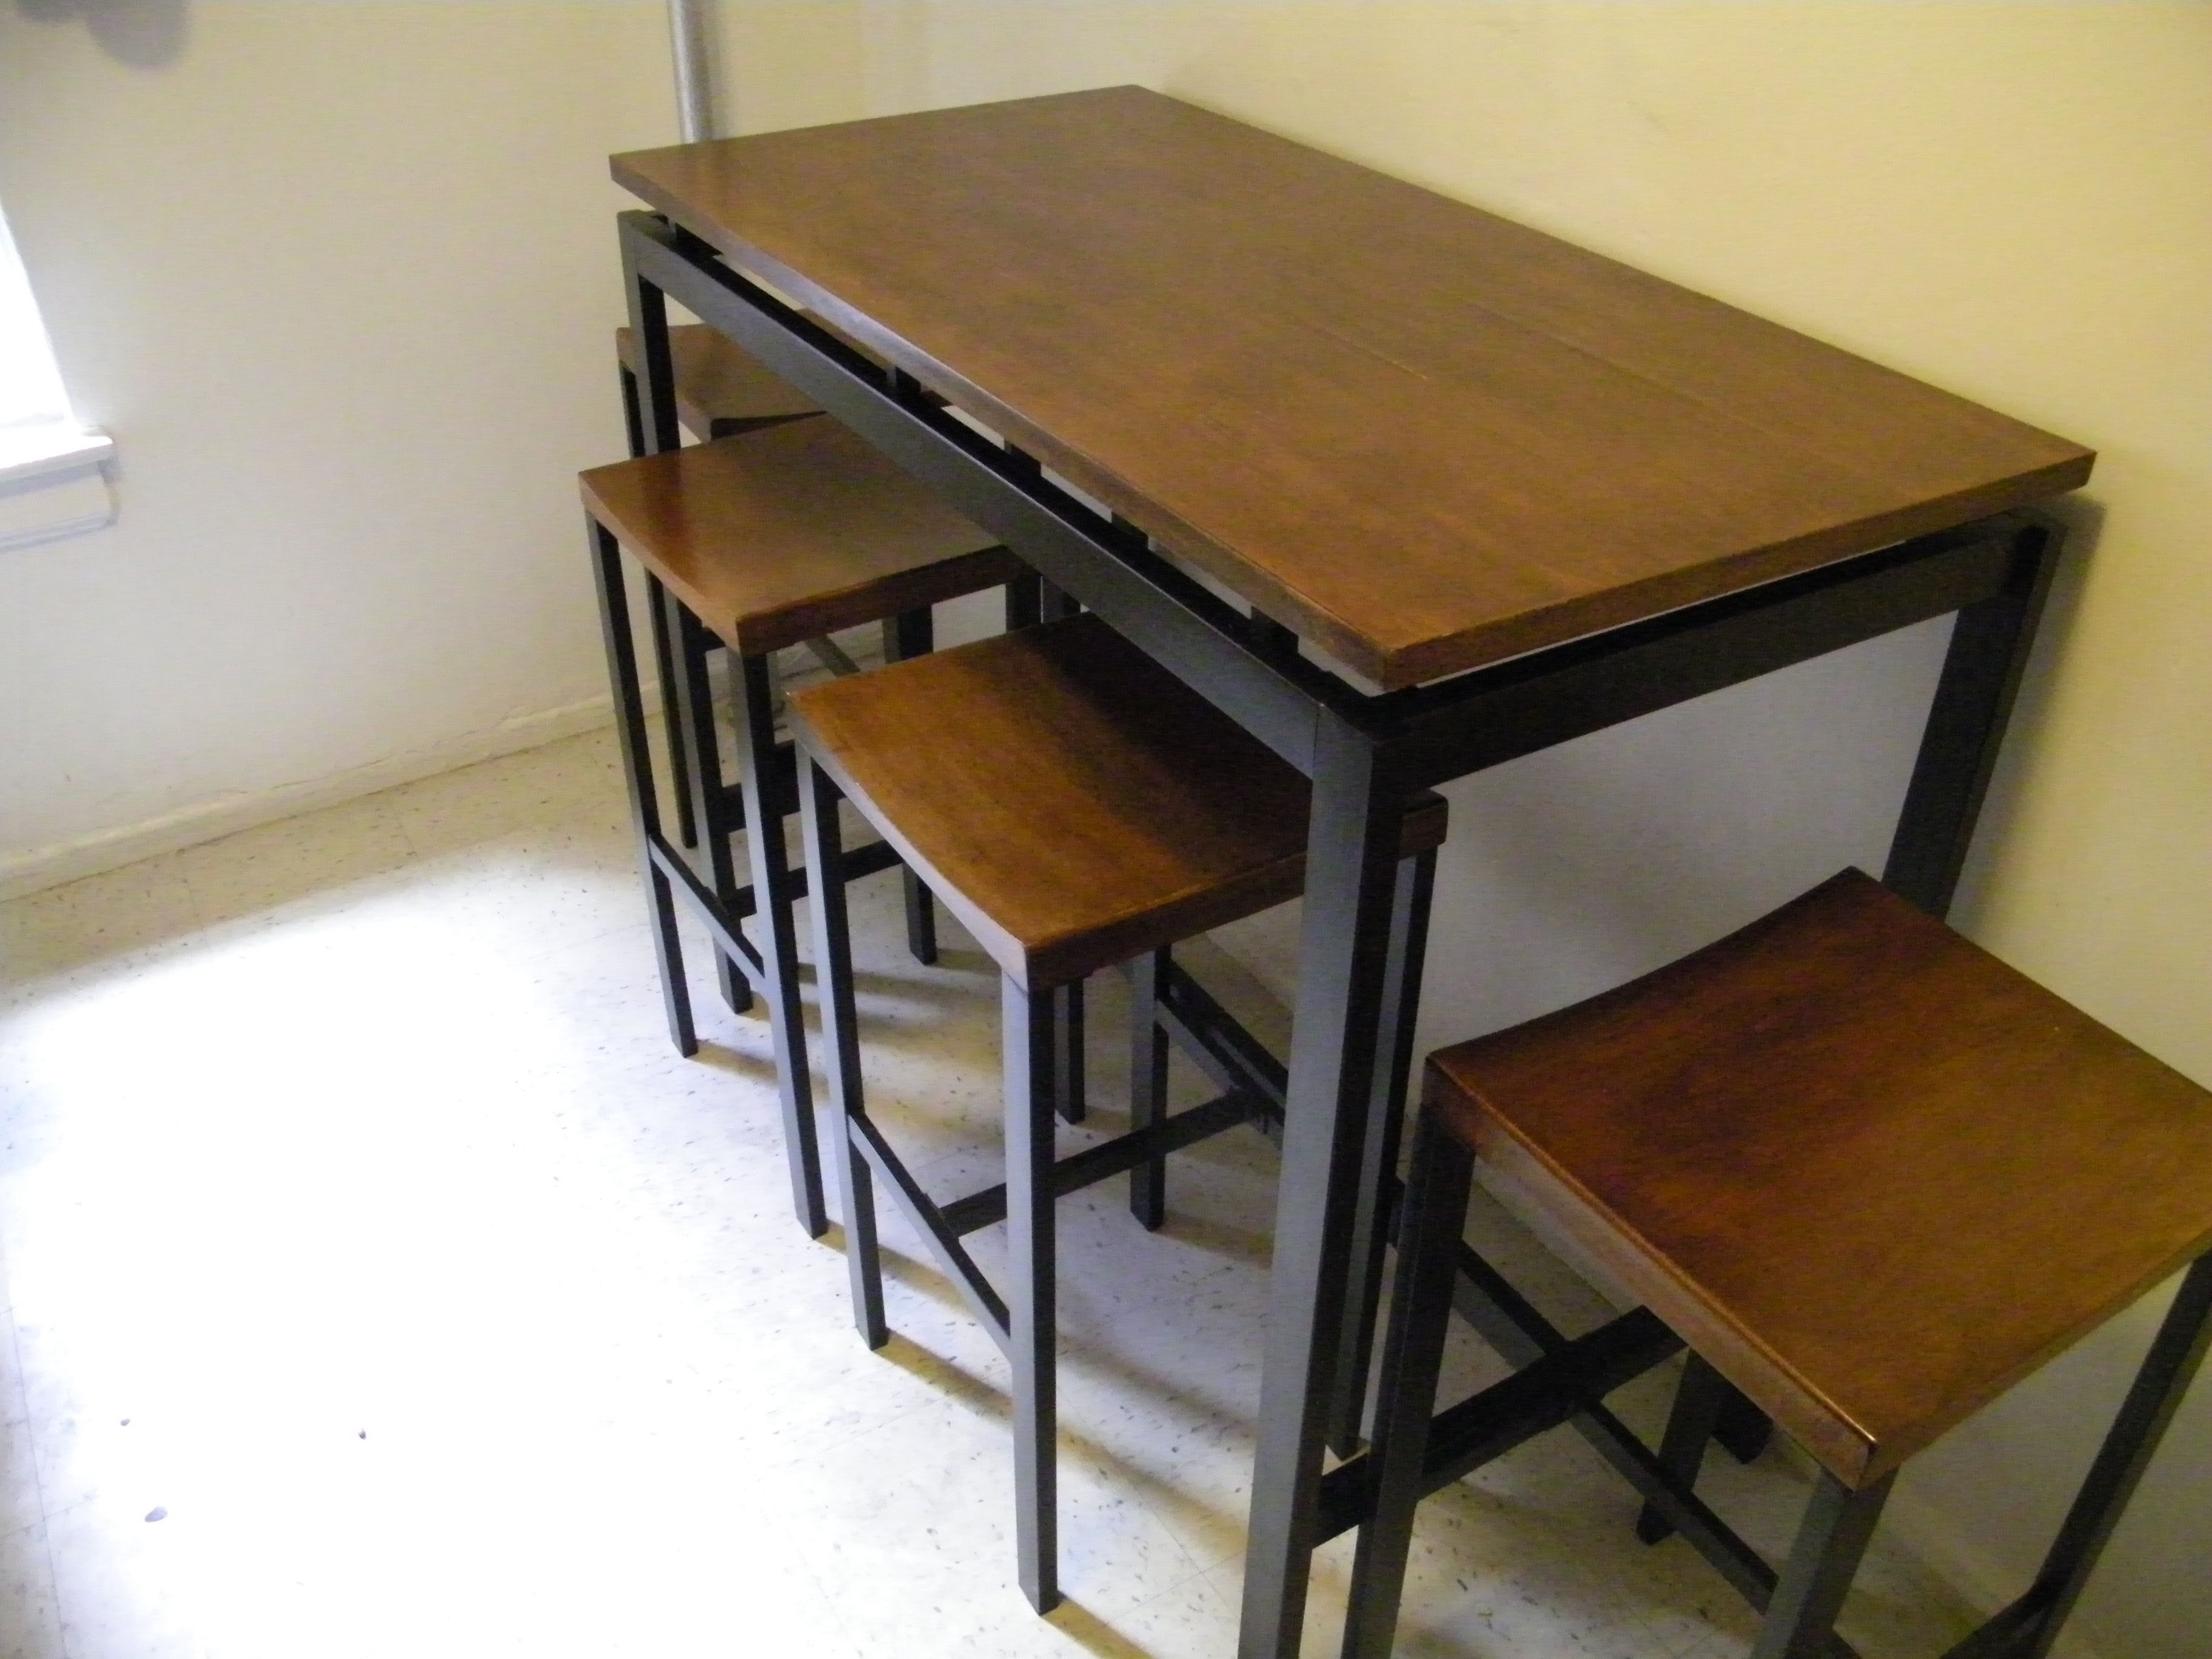 100] Counter-height kitchen table and four stools, about 40 inches ...